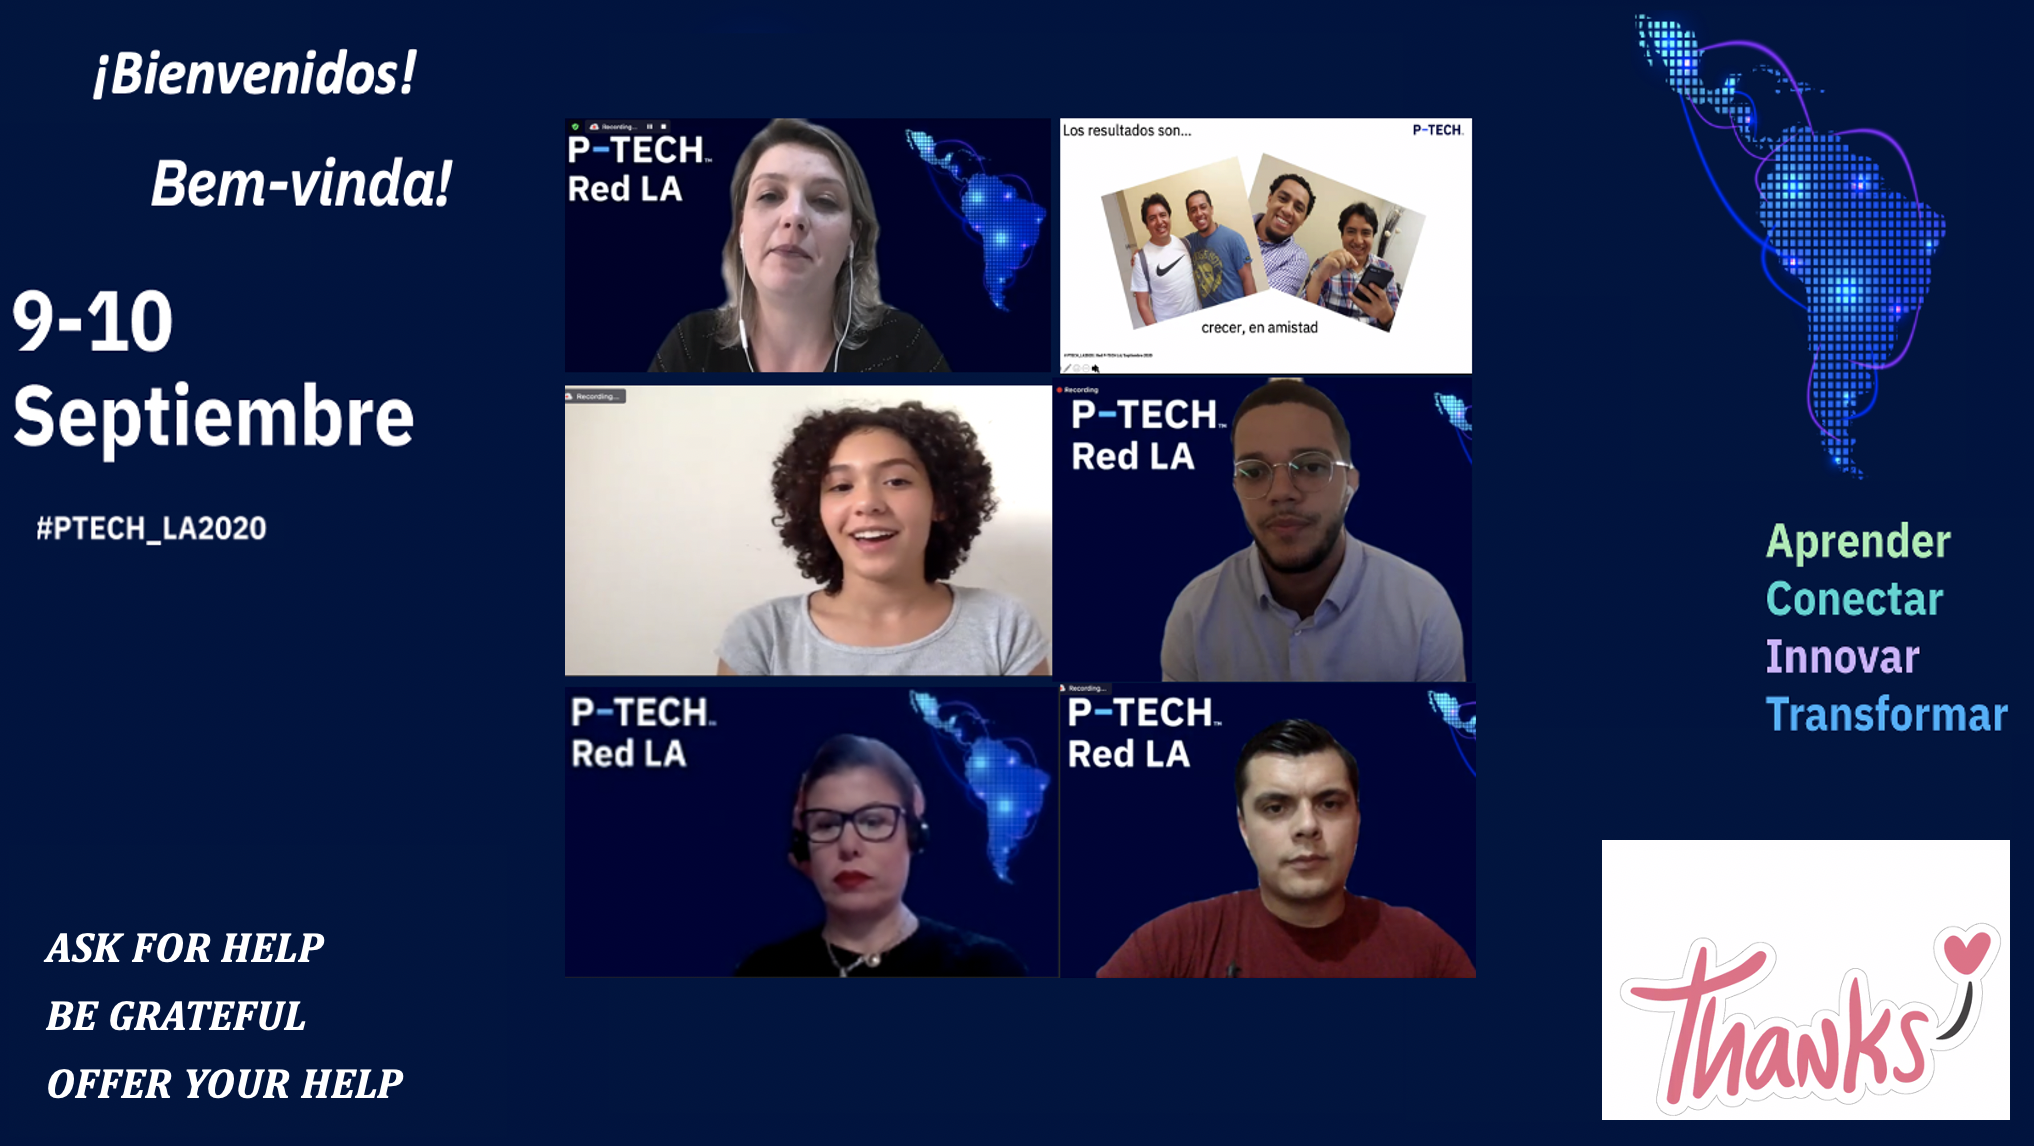 Picture with the color scheme and iconography of the P-TECH LA 2020 virtual event. In the middle, there are photos of the mentors and speakers.